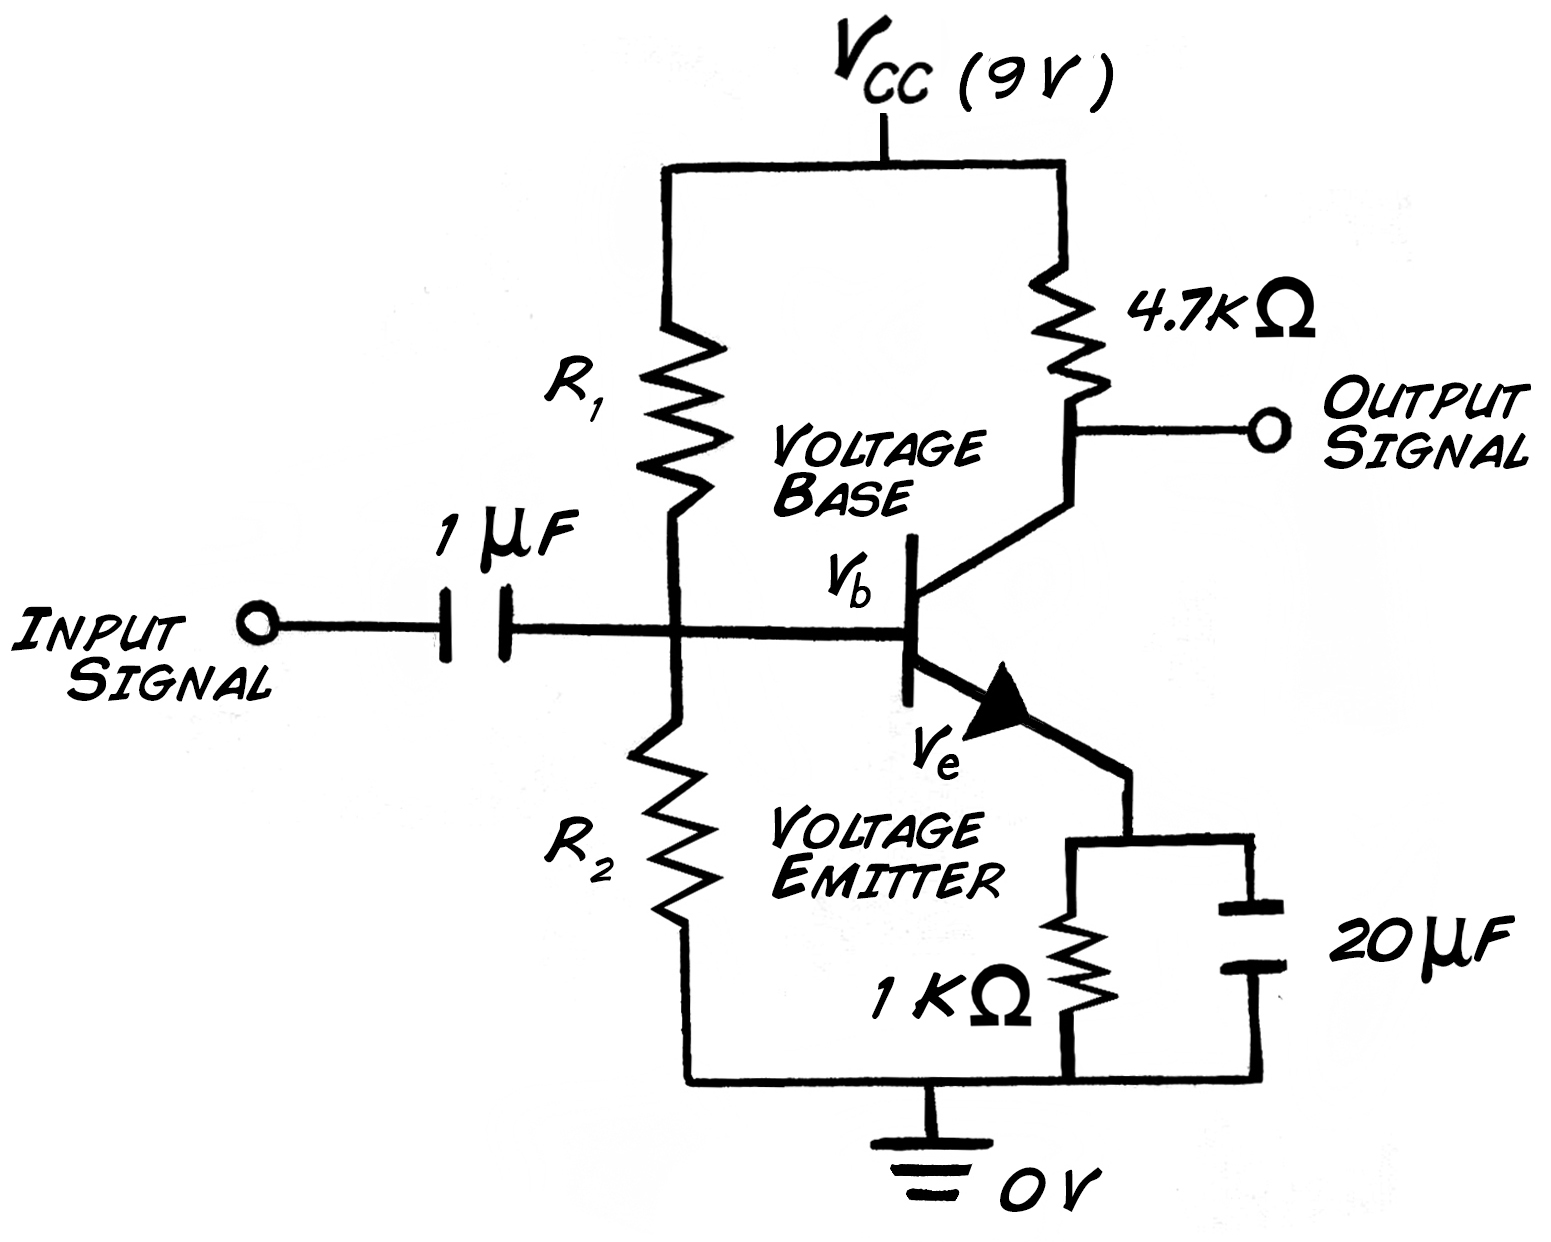 Value Of 22 Uf And See What Happens To Our Circuit Figure Below